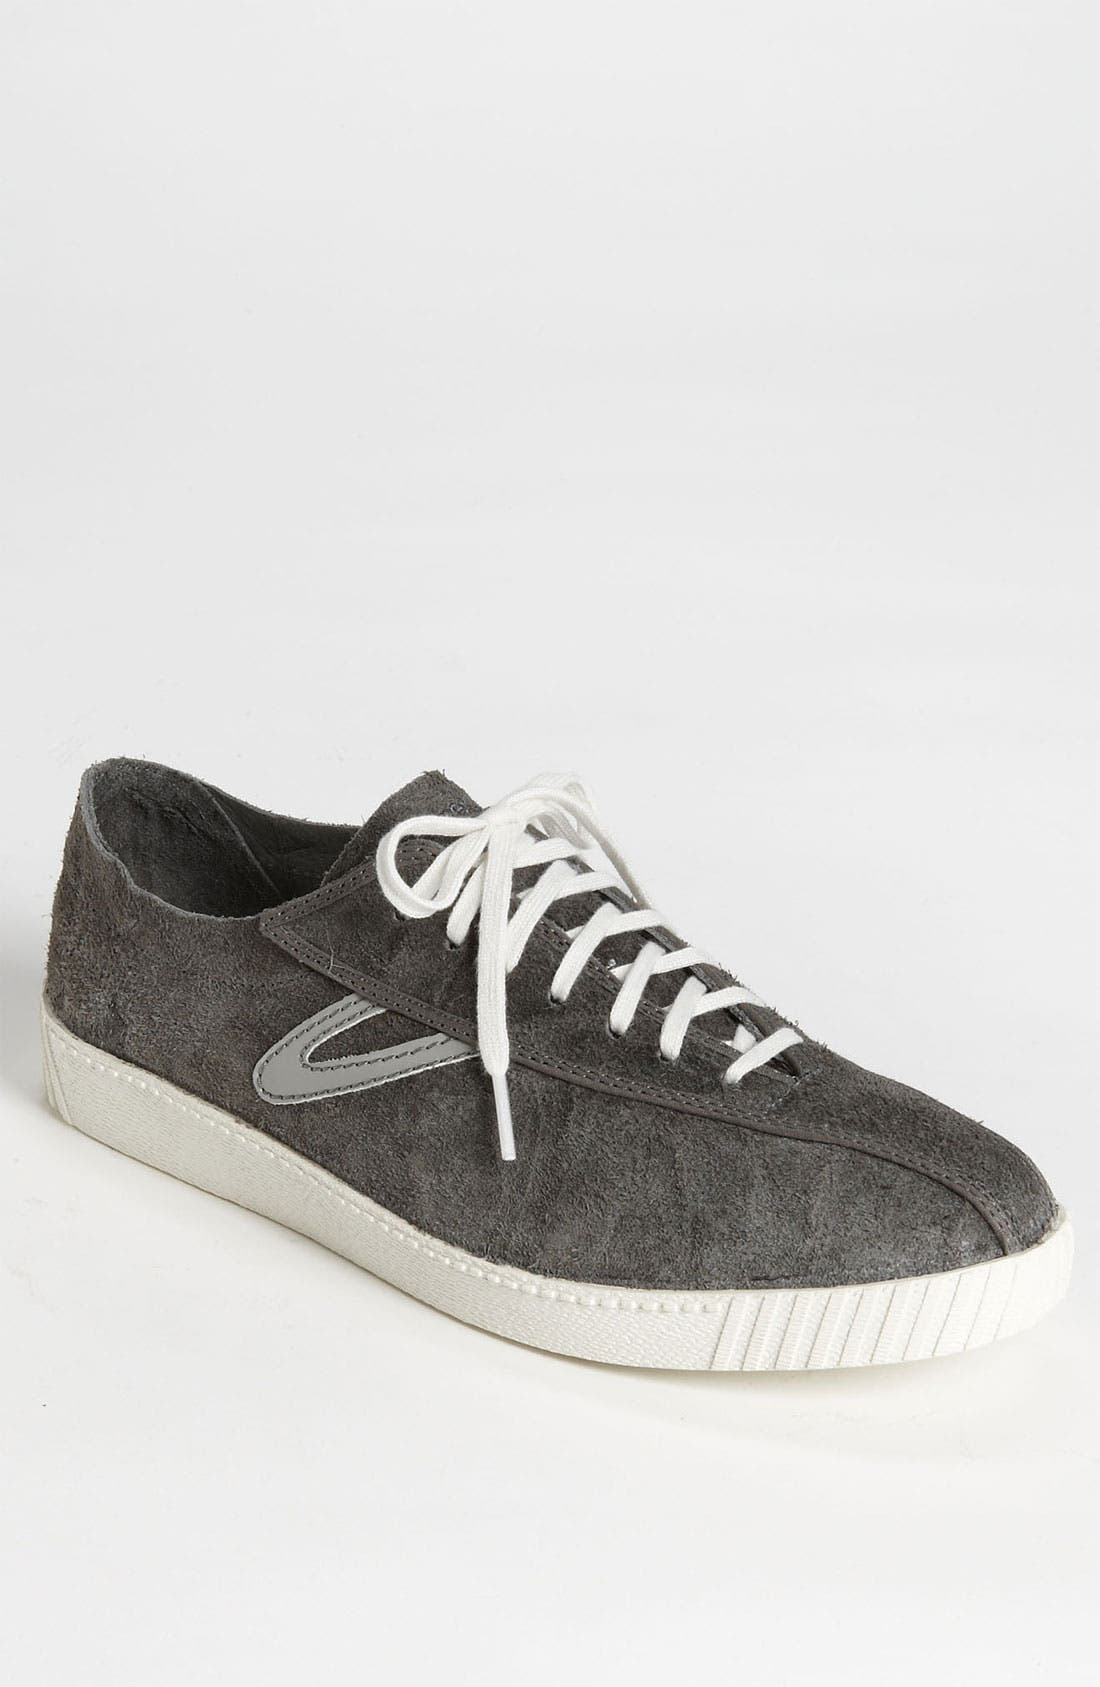 Alternate Image 1 Selected - Tretorn 'Nylite' Reverse Leather Sneaker